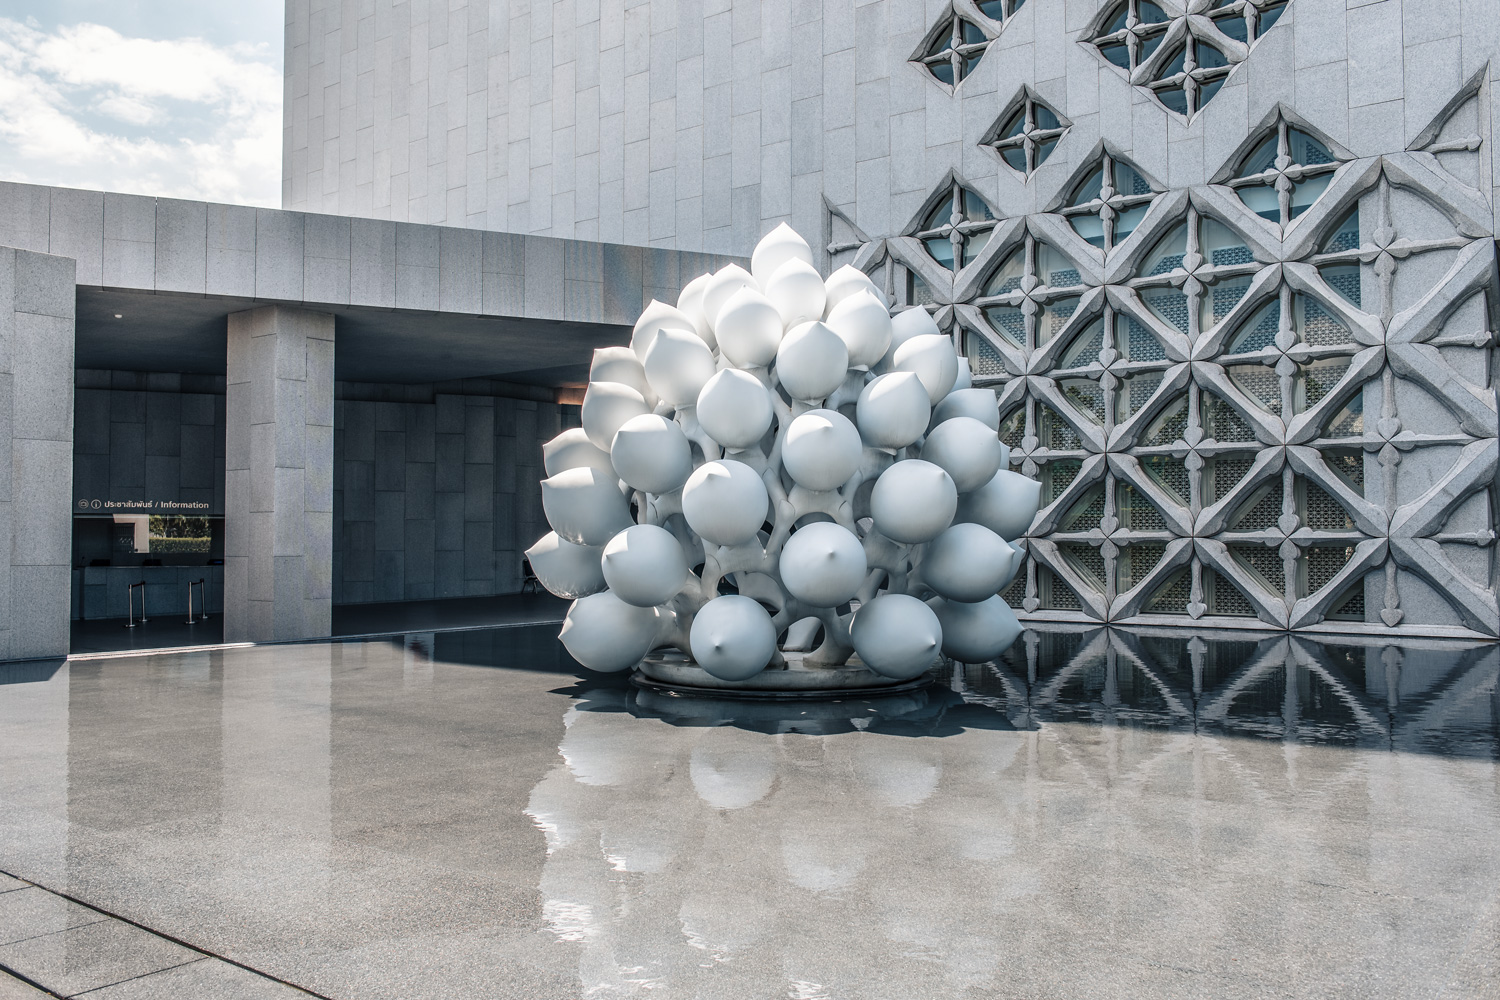 Bangkok Art and Culture - ( 2016 GUIDE TO MUSEUMS AND ART GALLERIES)